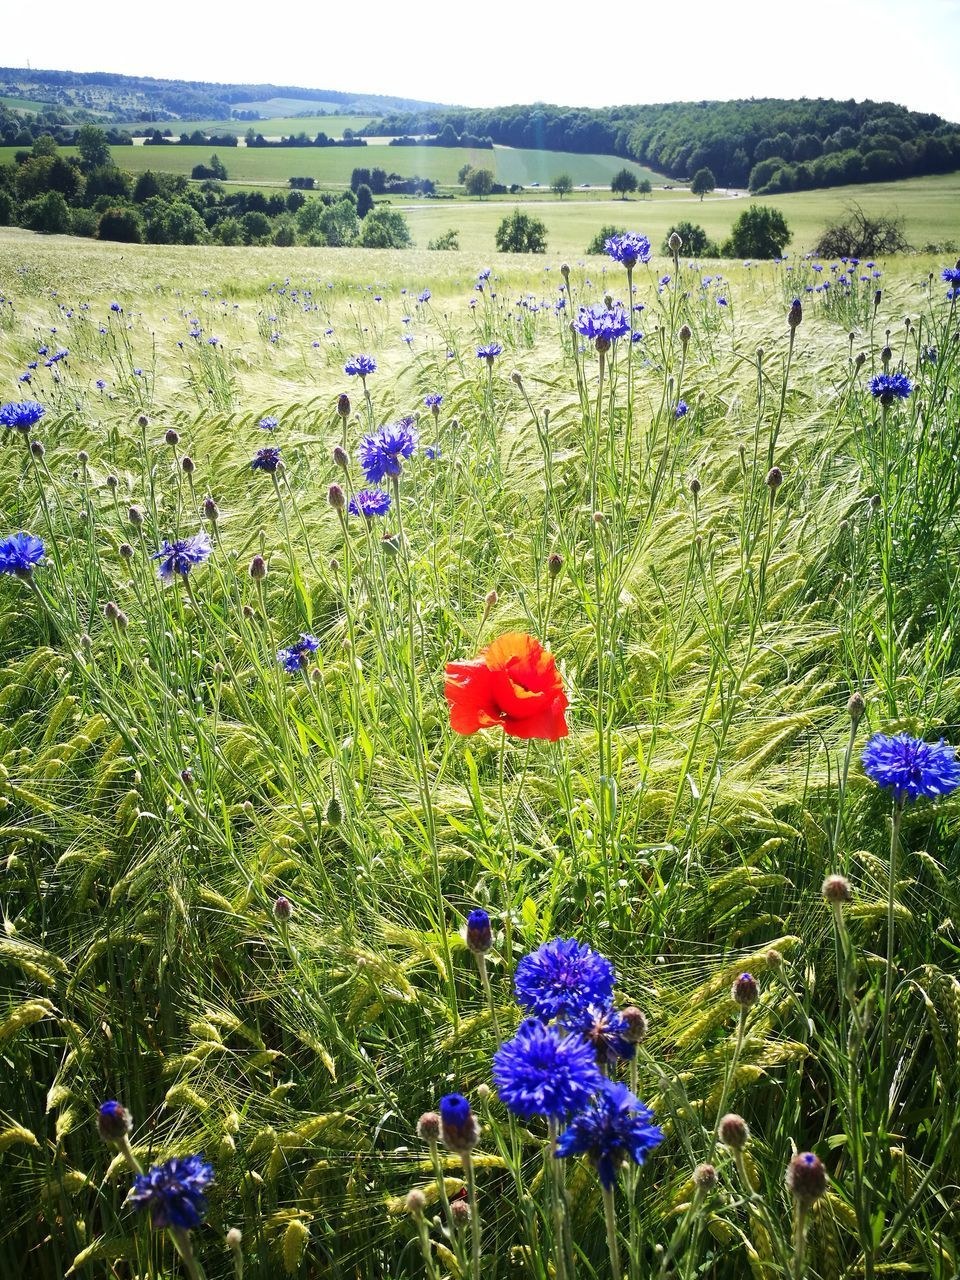 flower, growth, nature, field, poppy, beauty in nature, plant, grass, purple, landscape, tranquility, wildflower, meadow, uncultivated, no people, outdoors, day, fragility, freshness, blooming, rural scene, flower head